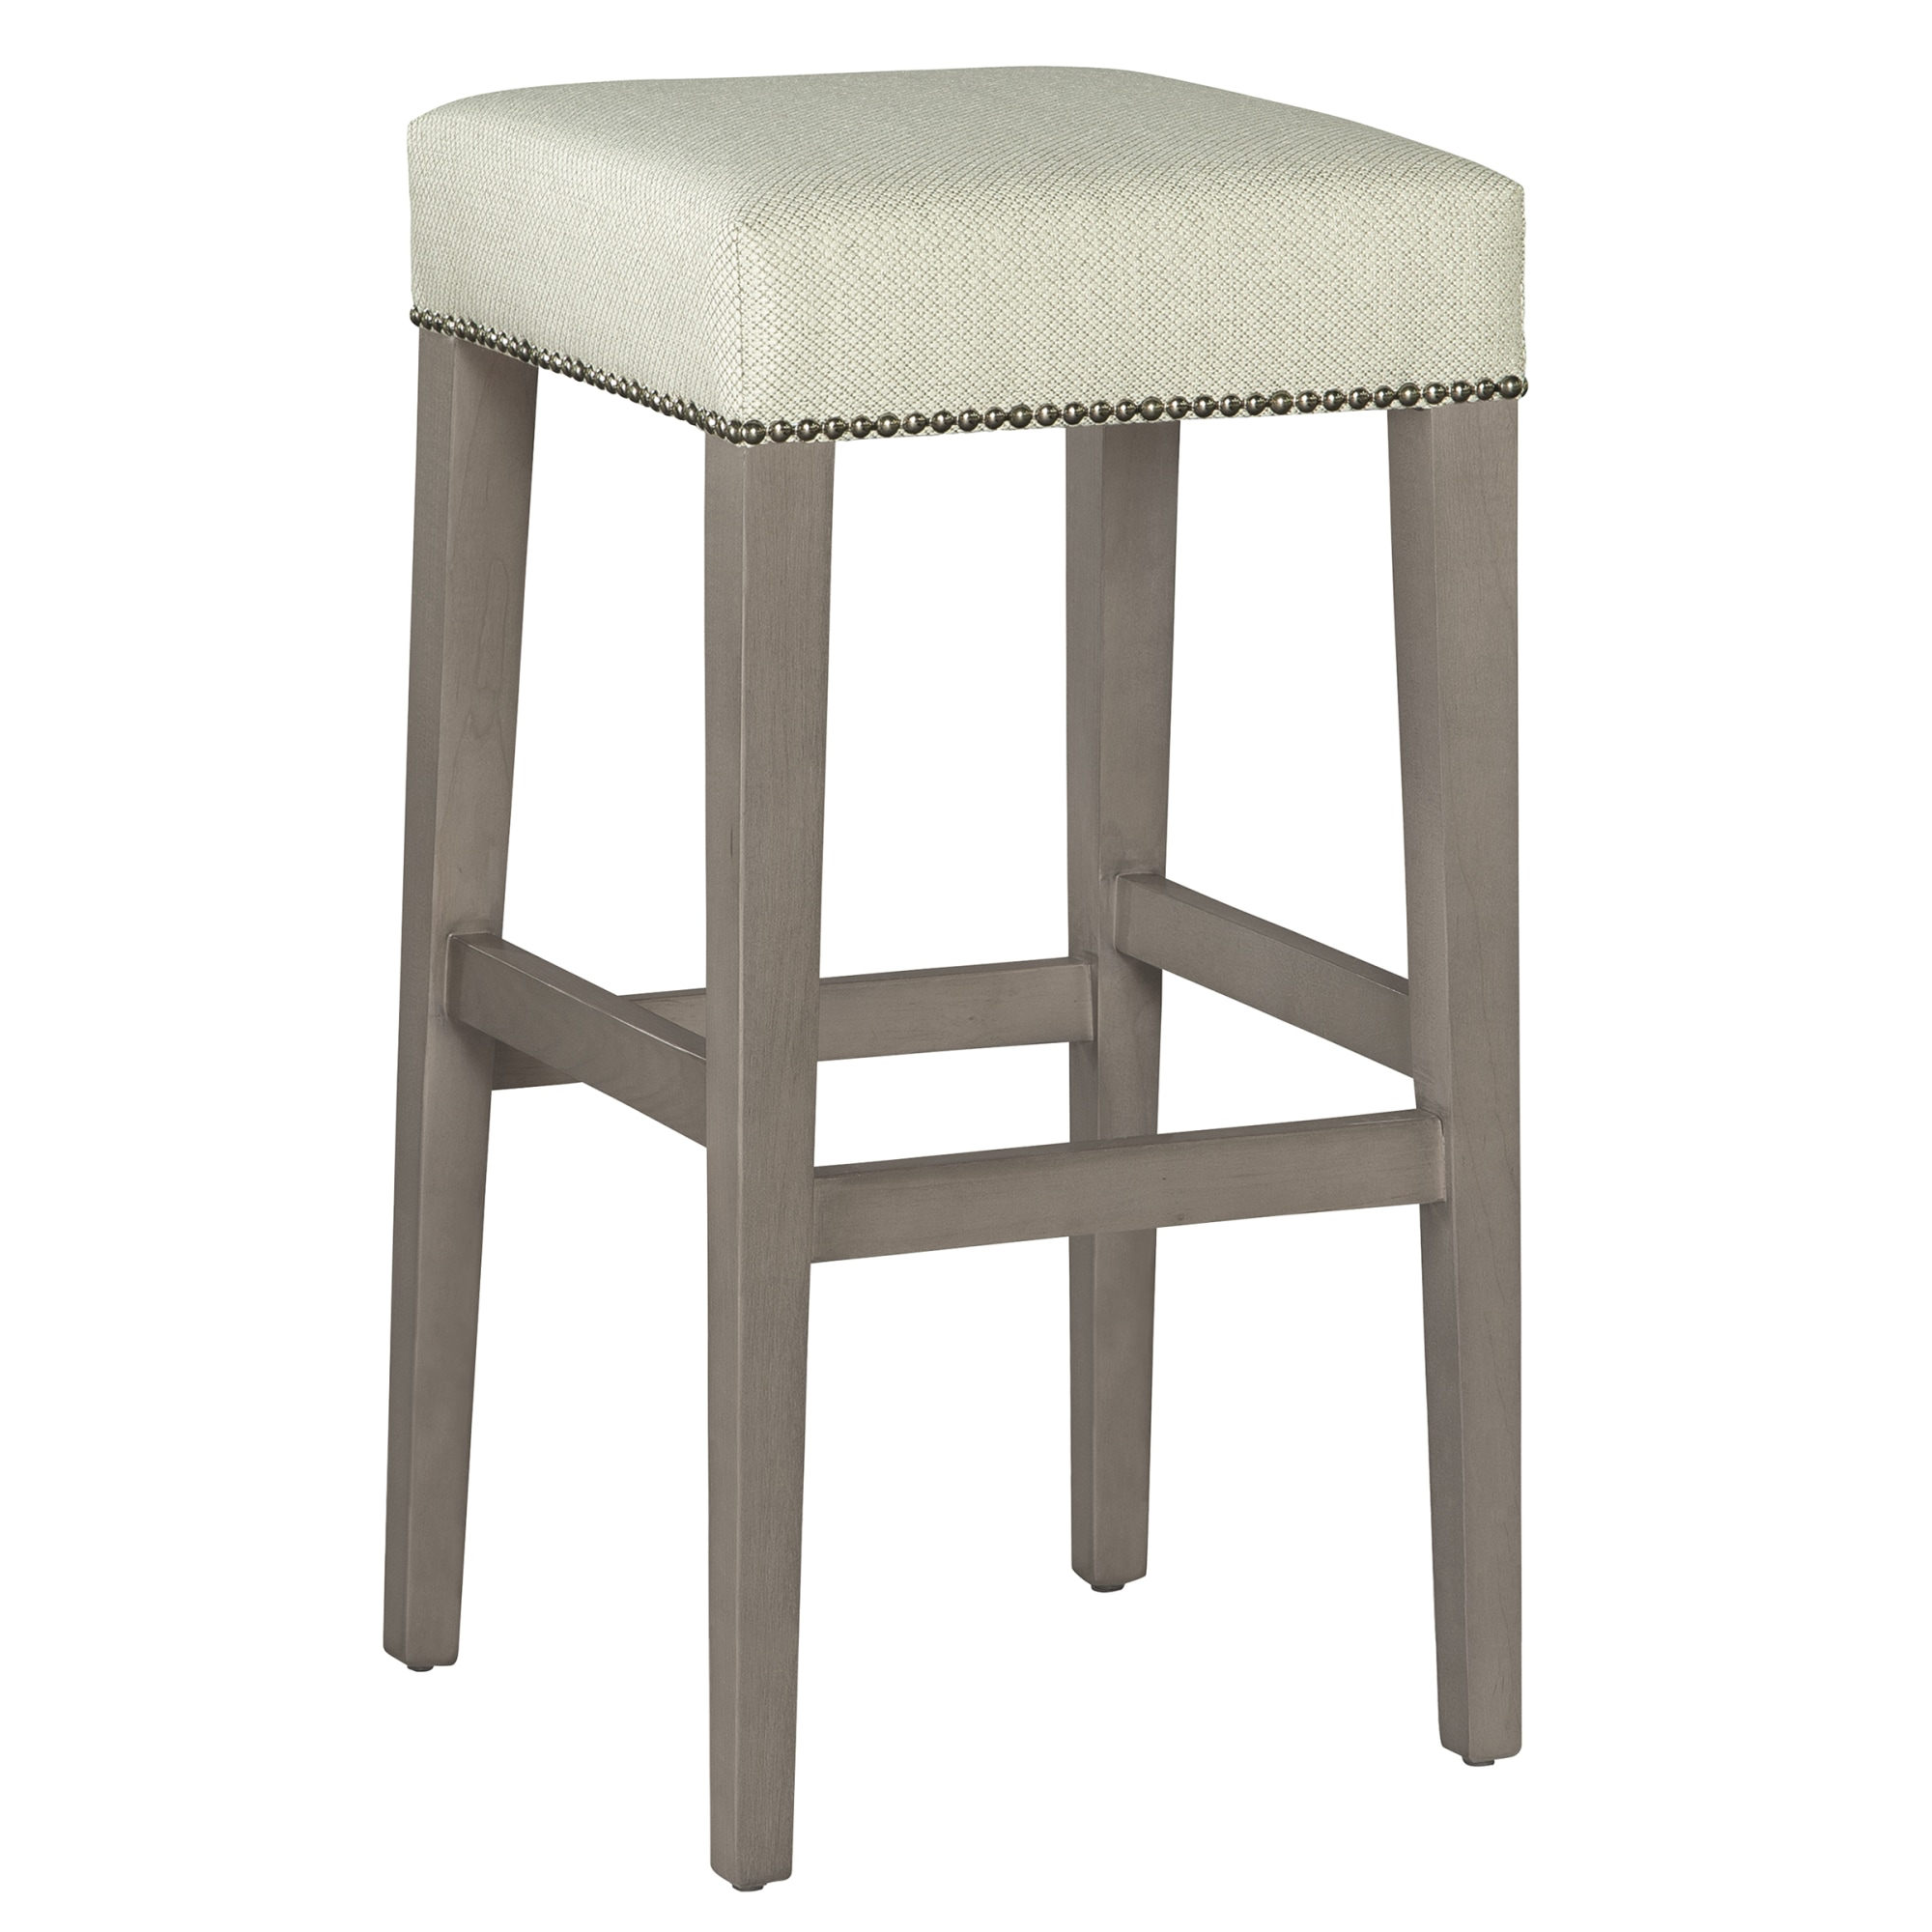 Image for 7435 Jaxon Bar Stool with Nailheads from Hekman Official Website